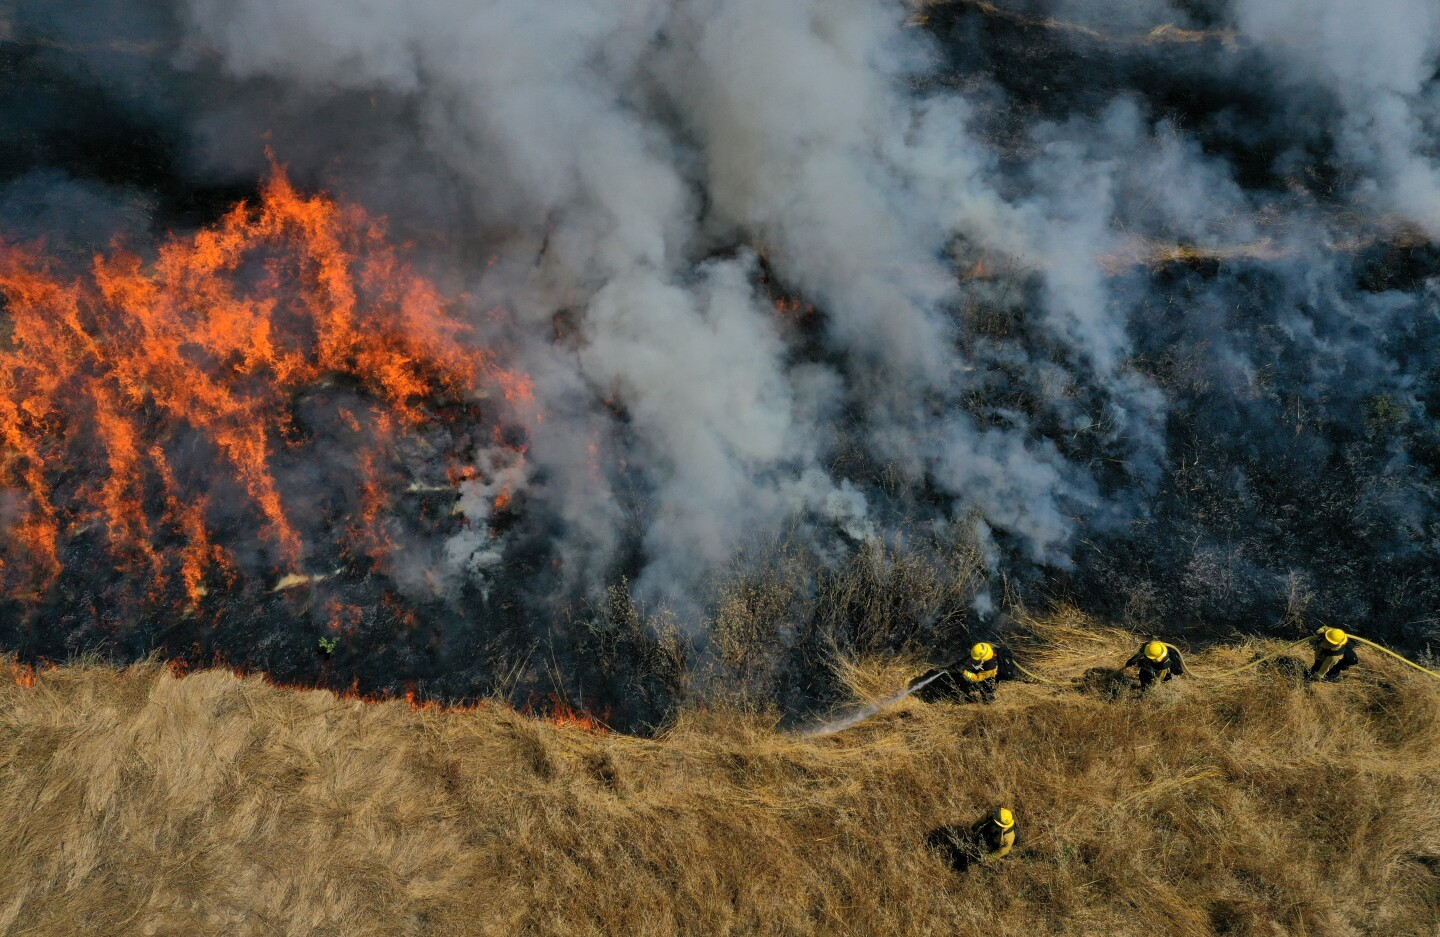 Firefighters in a field of tall grass look down on a fire and smoke.